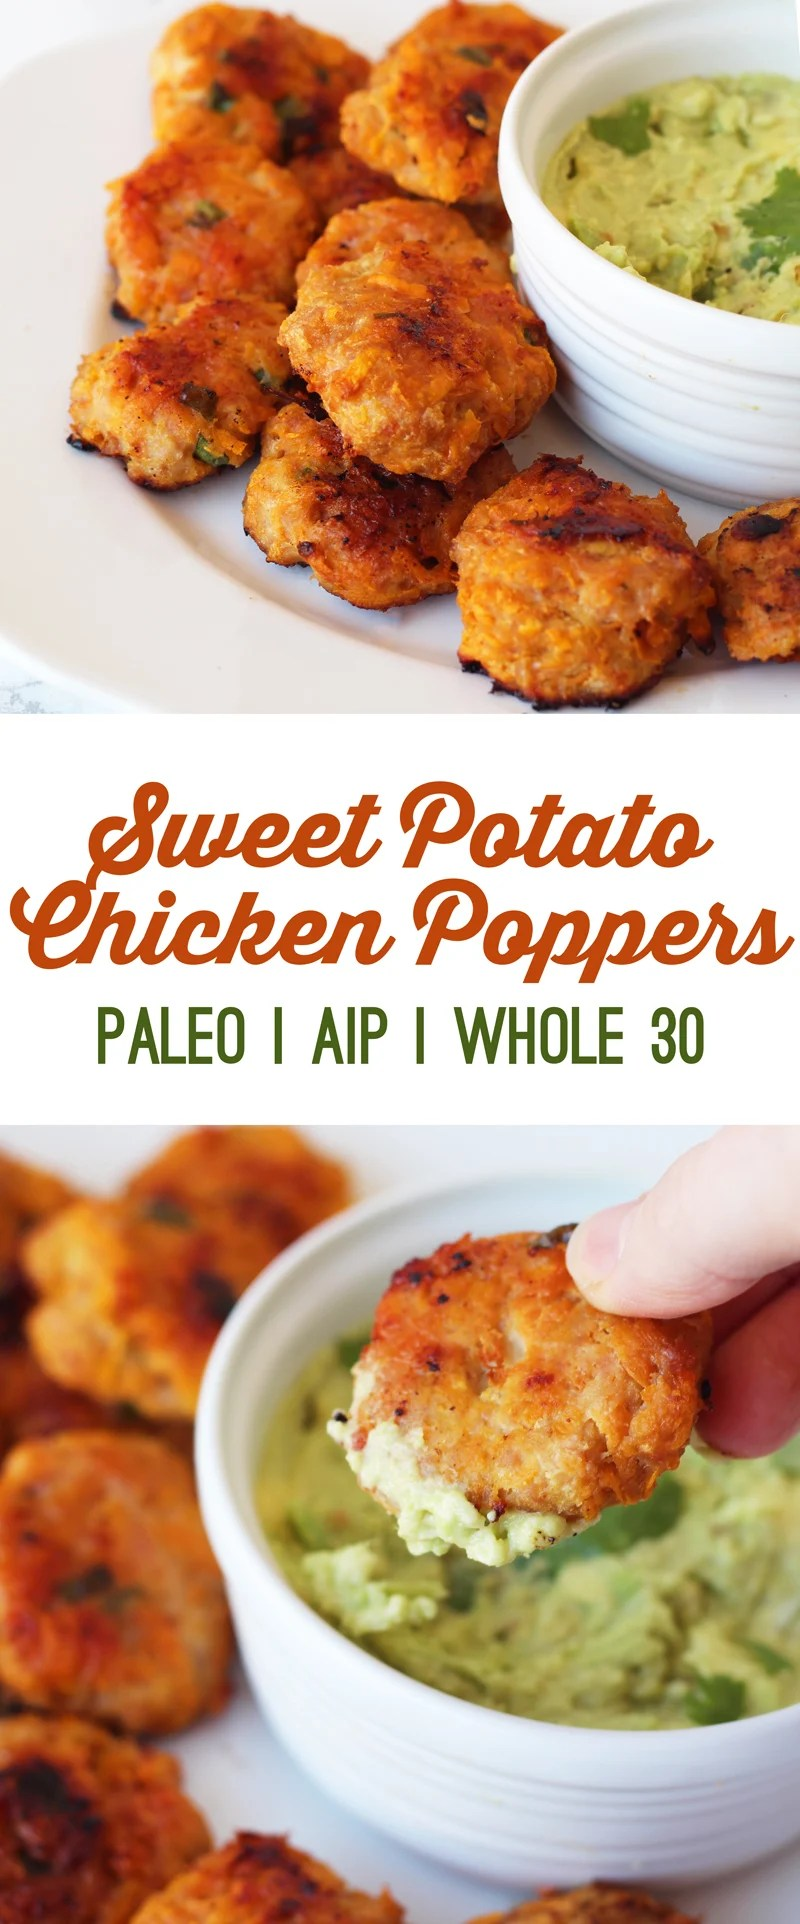 Sweet Potato Chicken Poppers (Paleo, AIP & Whole 30)